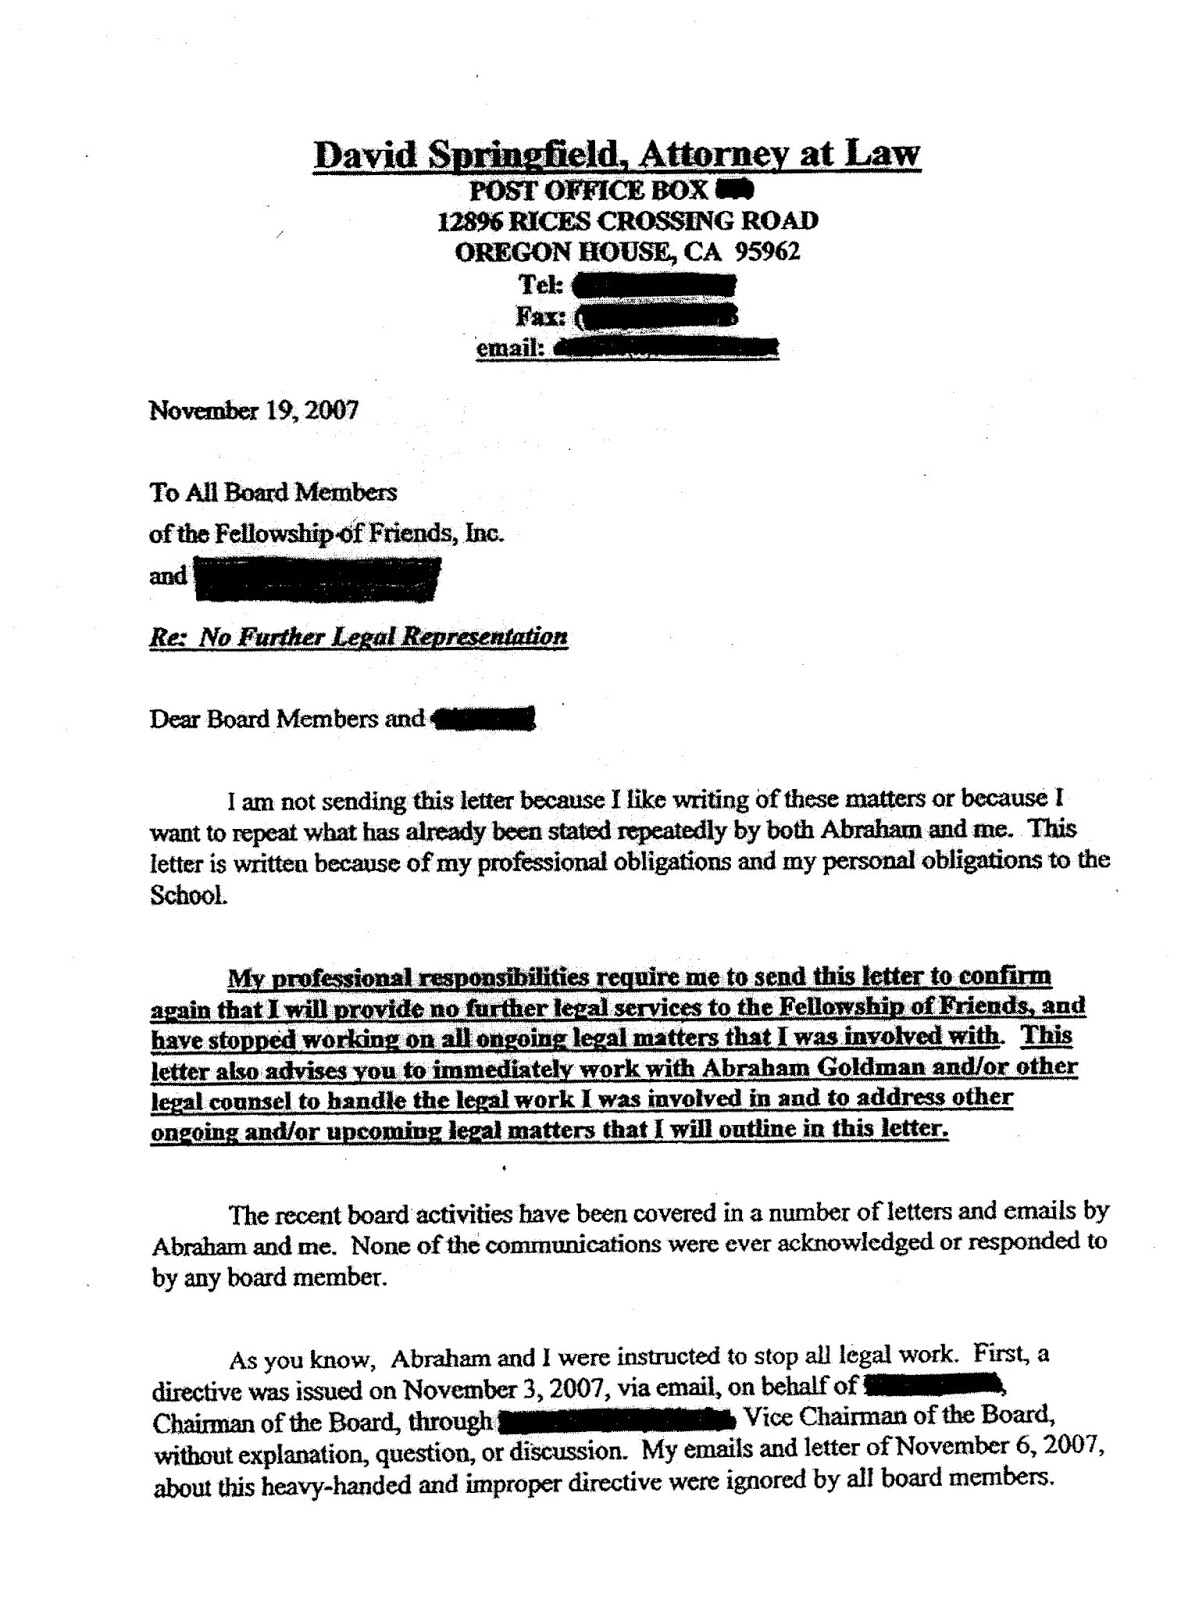 Lawyer David Springfield letter to Fellowship of Friends Board of Directors - Page 1